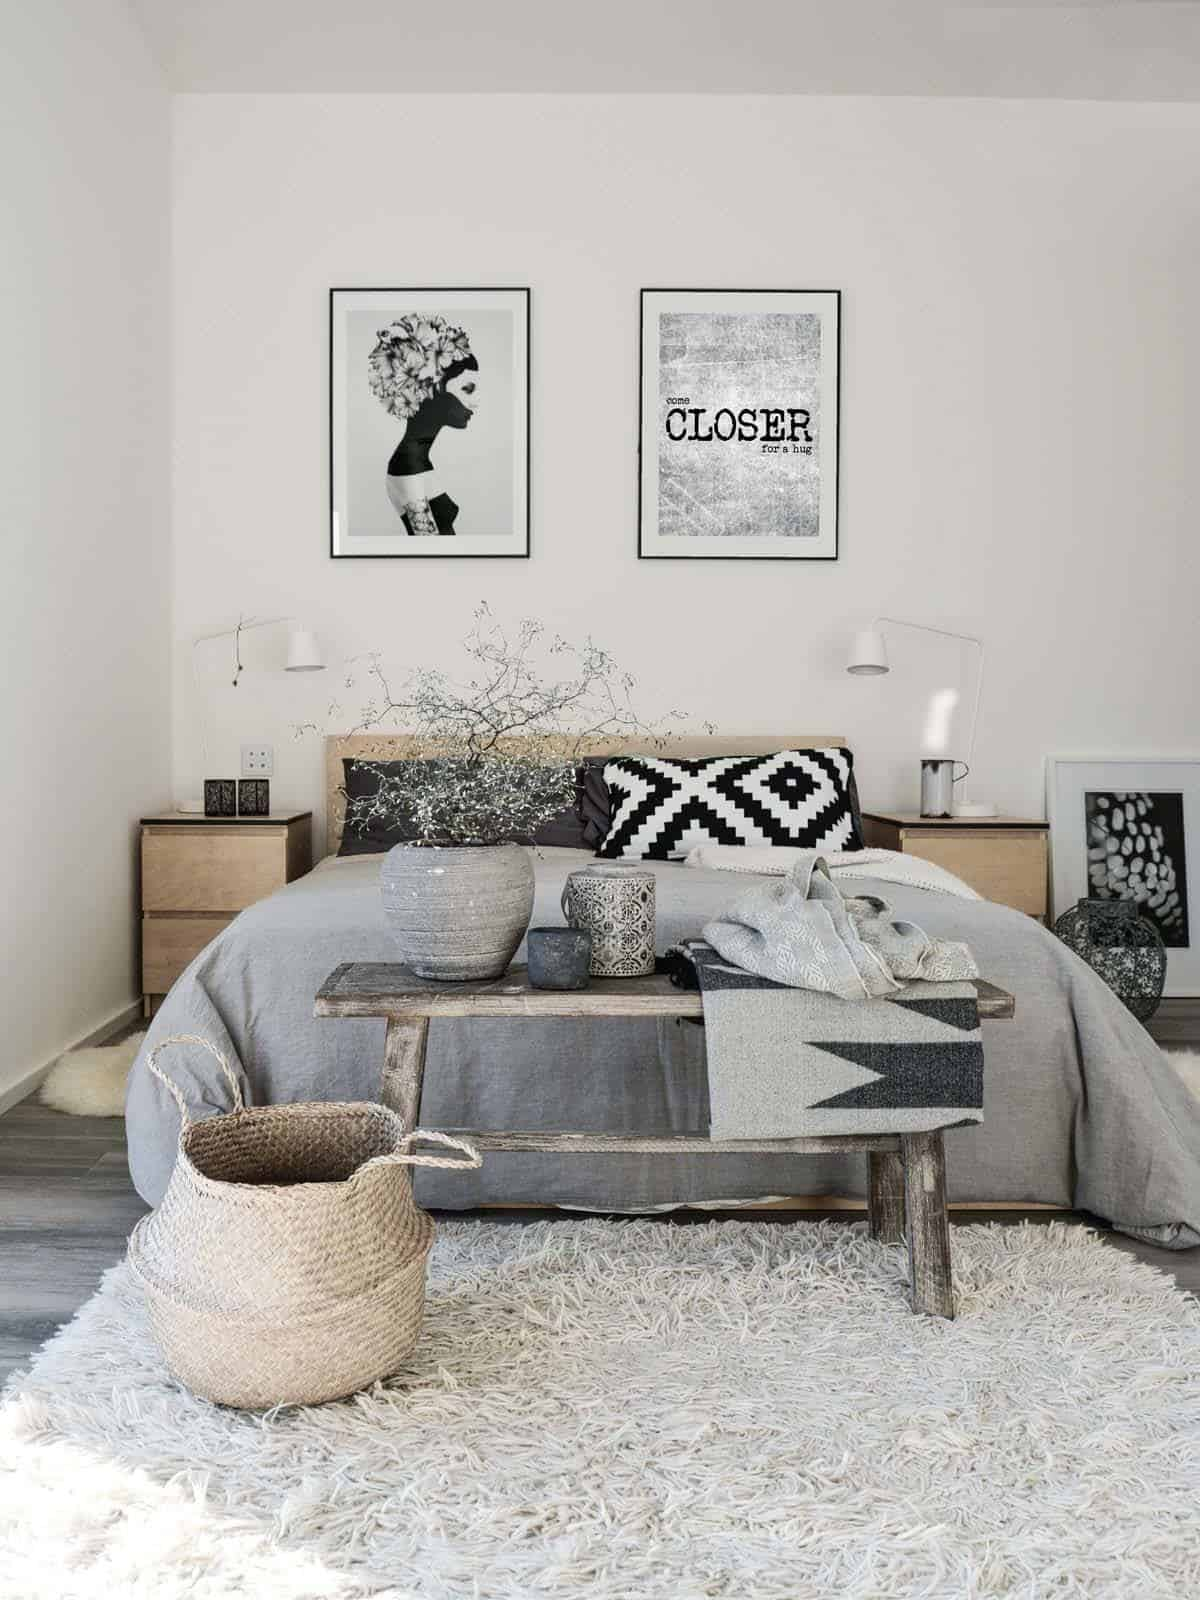 12 Scandinavian bedroom ideas that are modern and stylish